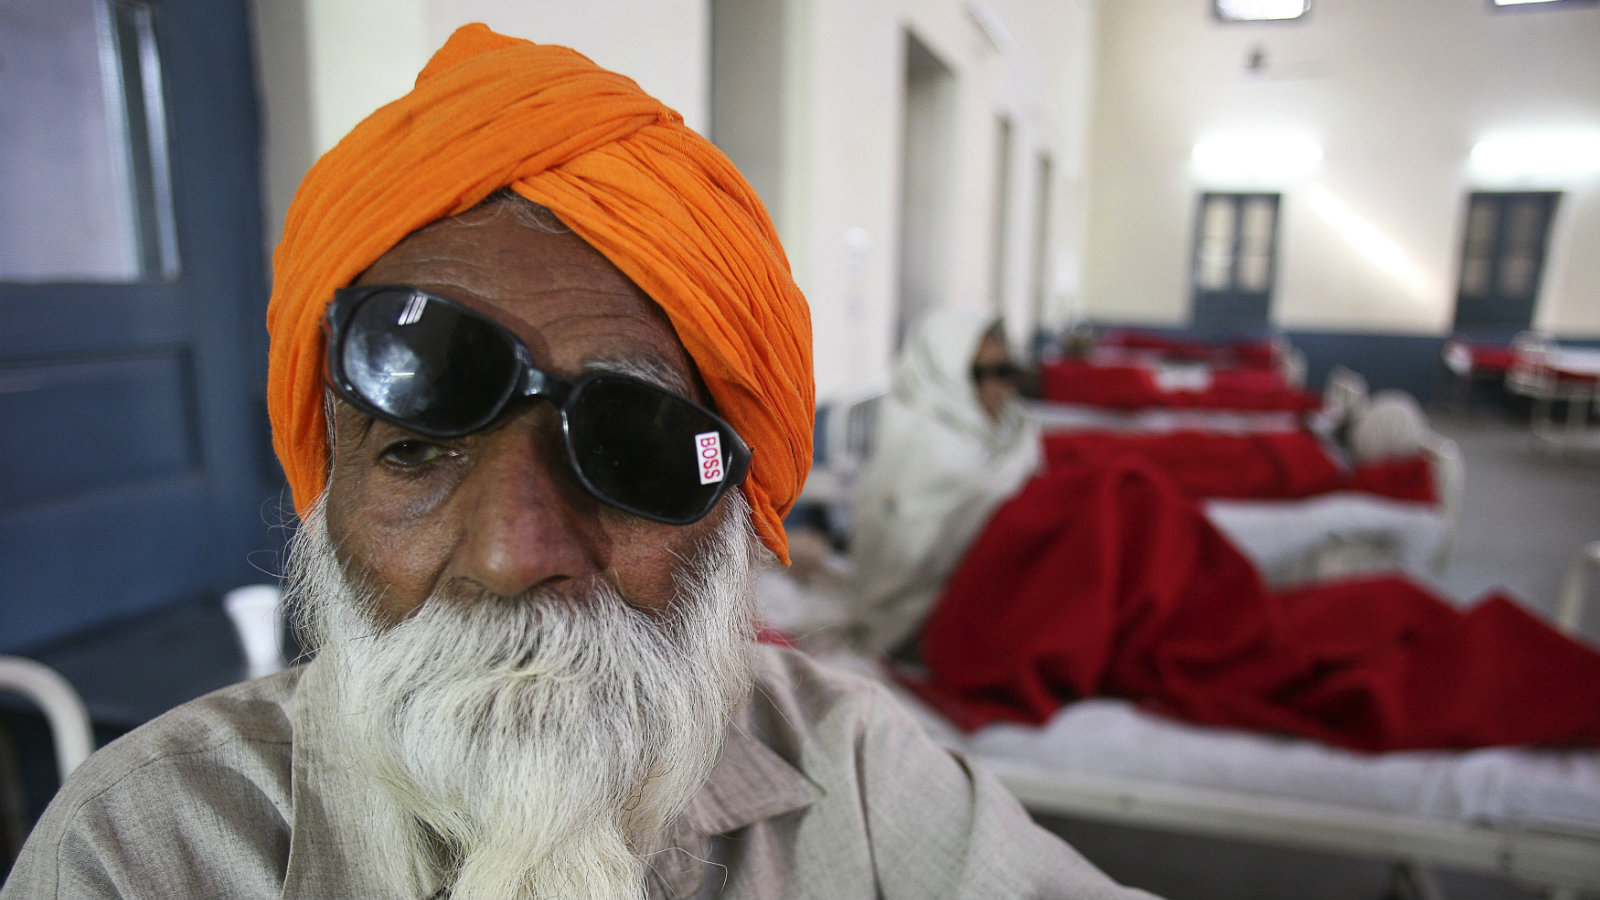 A man sits on a bed while waiting for treatment at a hospital after undergoing cataract removals from a free eye surgery camp, in the northern Indian city of Amritsar December 5, 2014. Fifteen Indians lost their sight after a doctor used suspected infected equipment to remove cataracts at the free eye surgery camp, the latest incident to highlight the dangers of shoddy medical treatment in the country. A criminal investigation has been launched against the non-governmental organization and the doctors who carried out the operations, mainly on elderly women, without consulting health authorities.